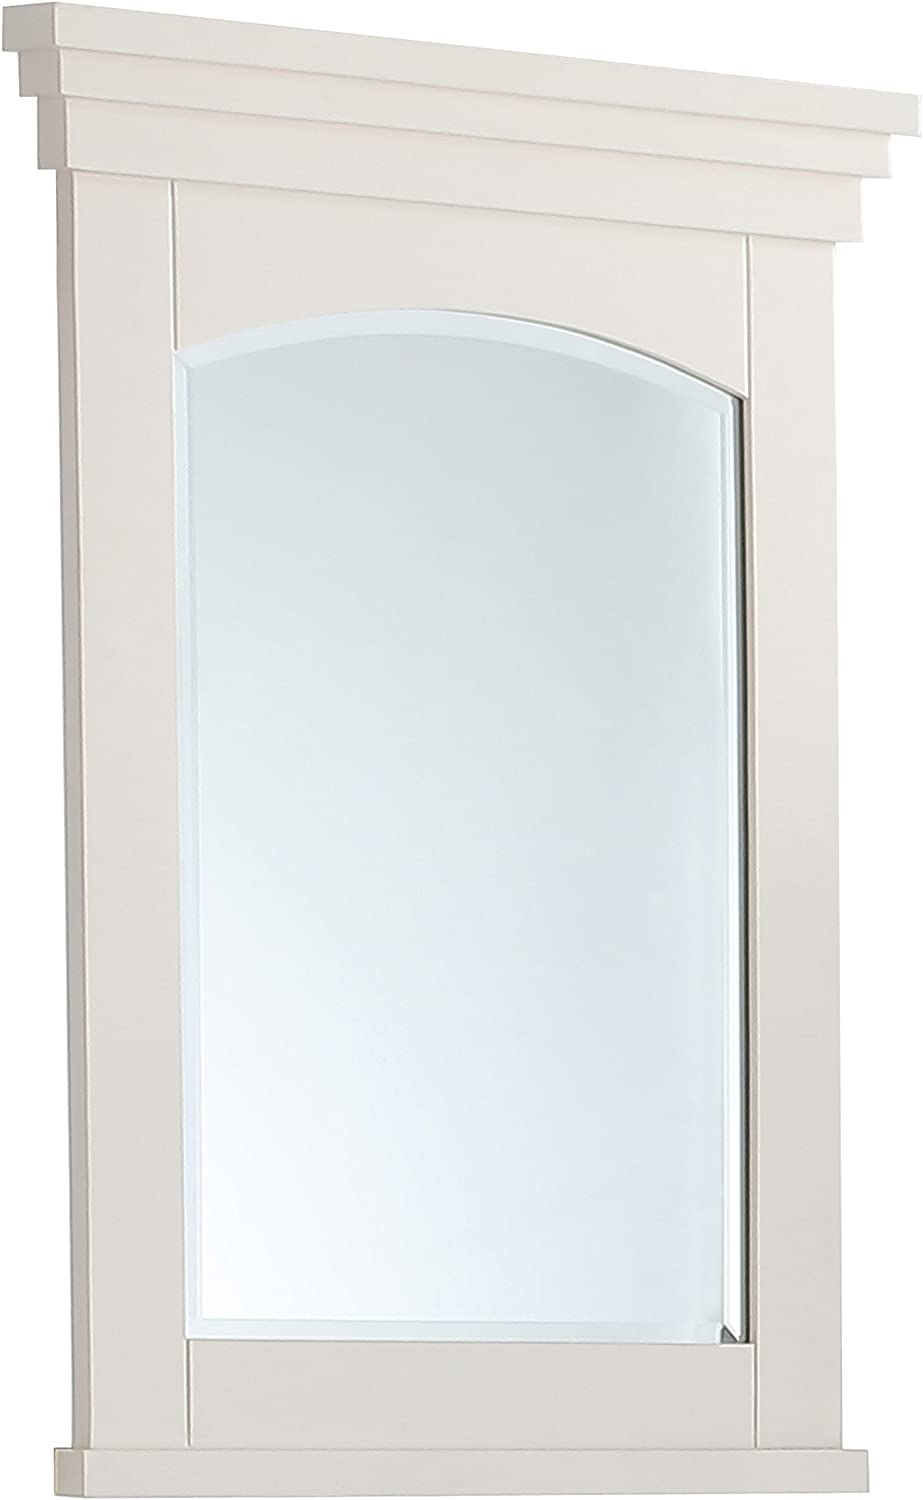 SIMPLIHOME Elise 24 inch x 34 inch Bath Vanity Décor Mirror in Off White